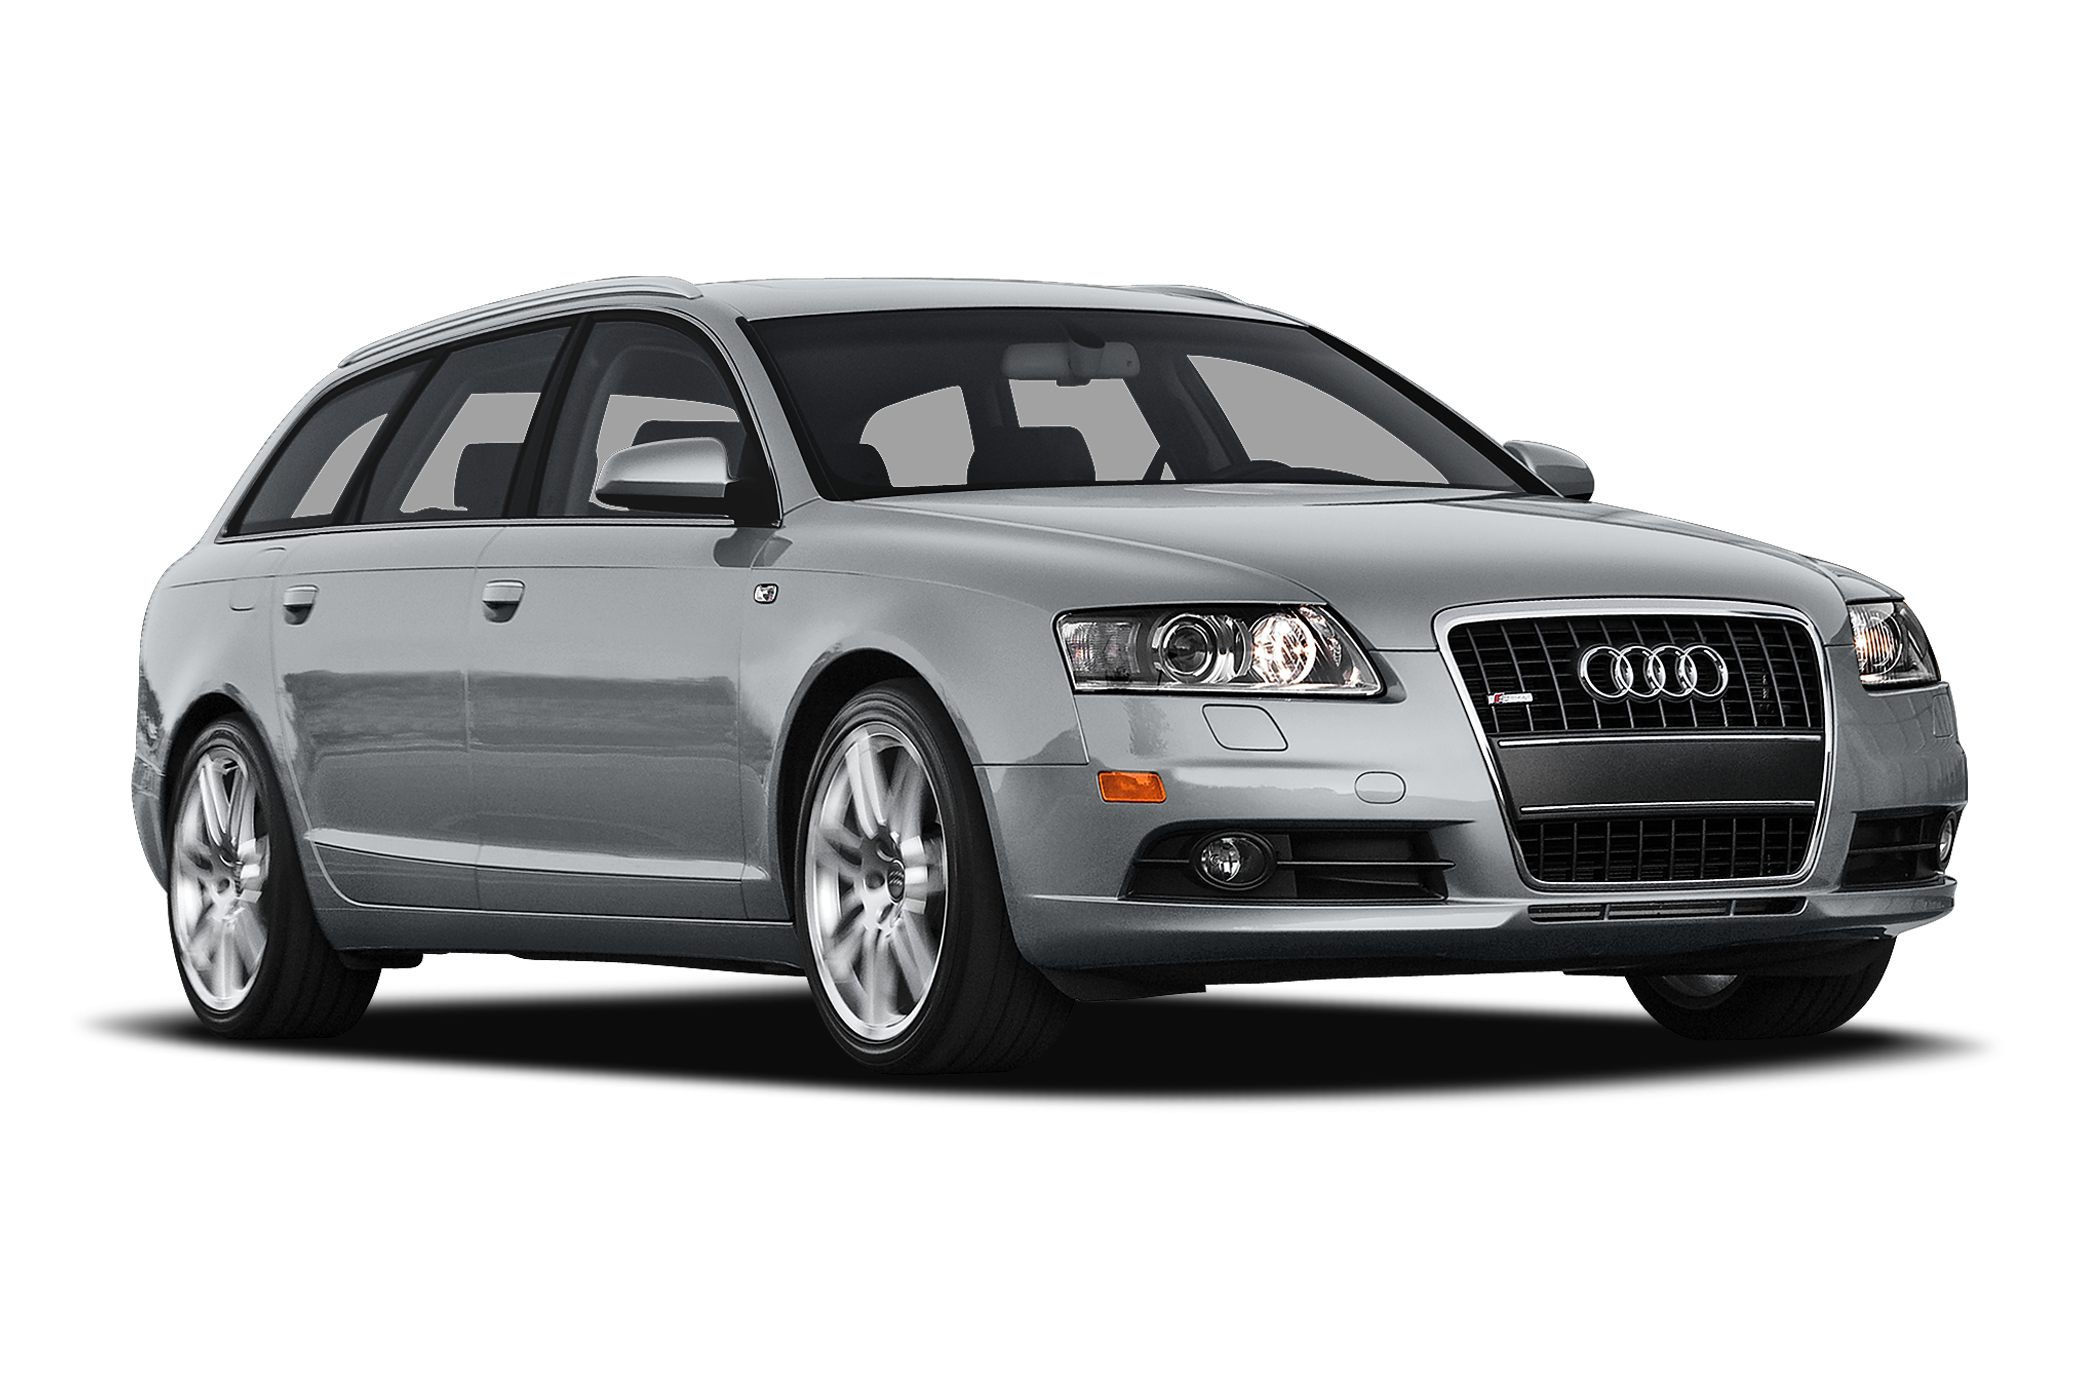 2008 Audi A6 vs Other Vehicles Overview